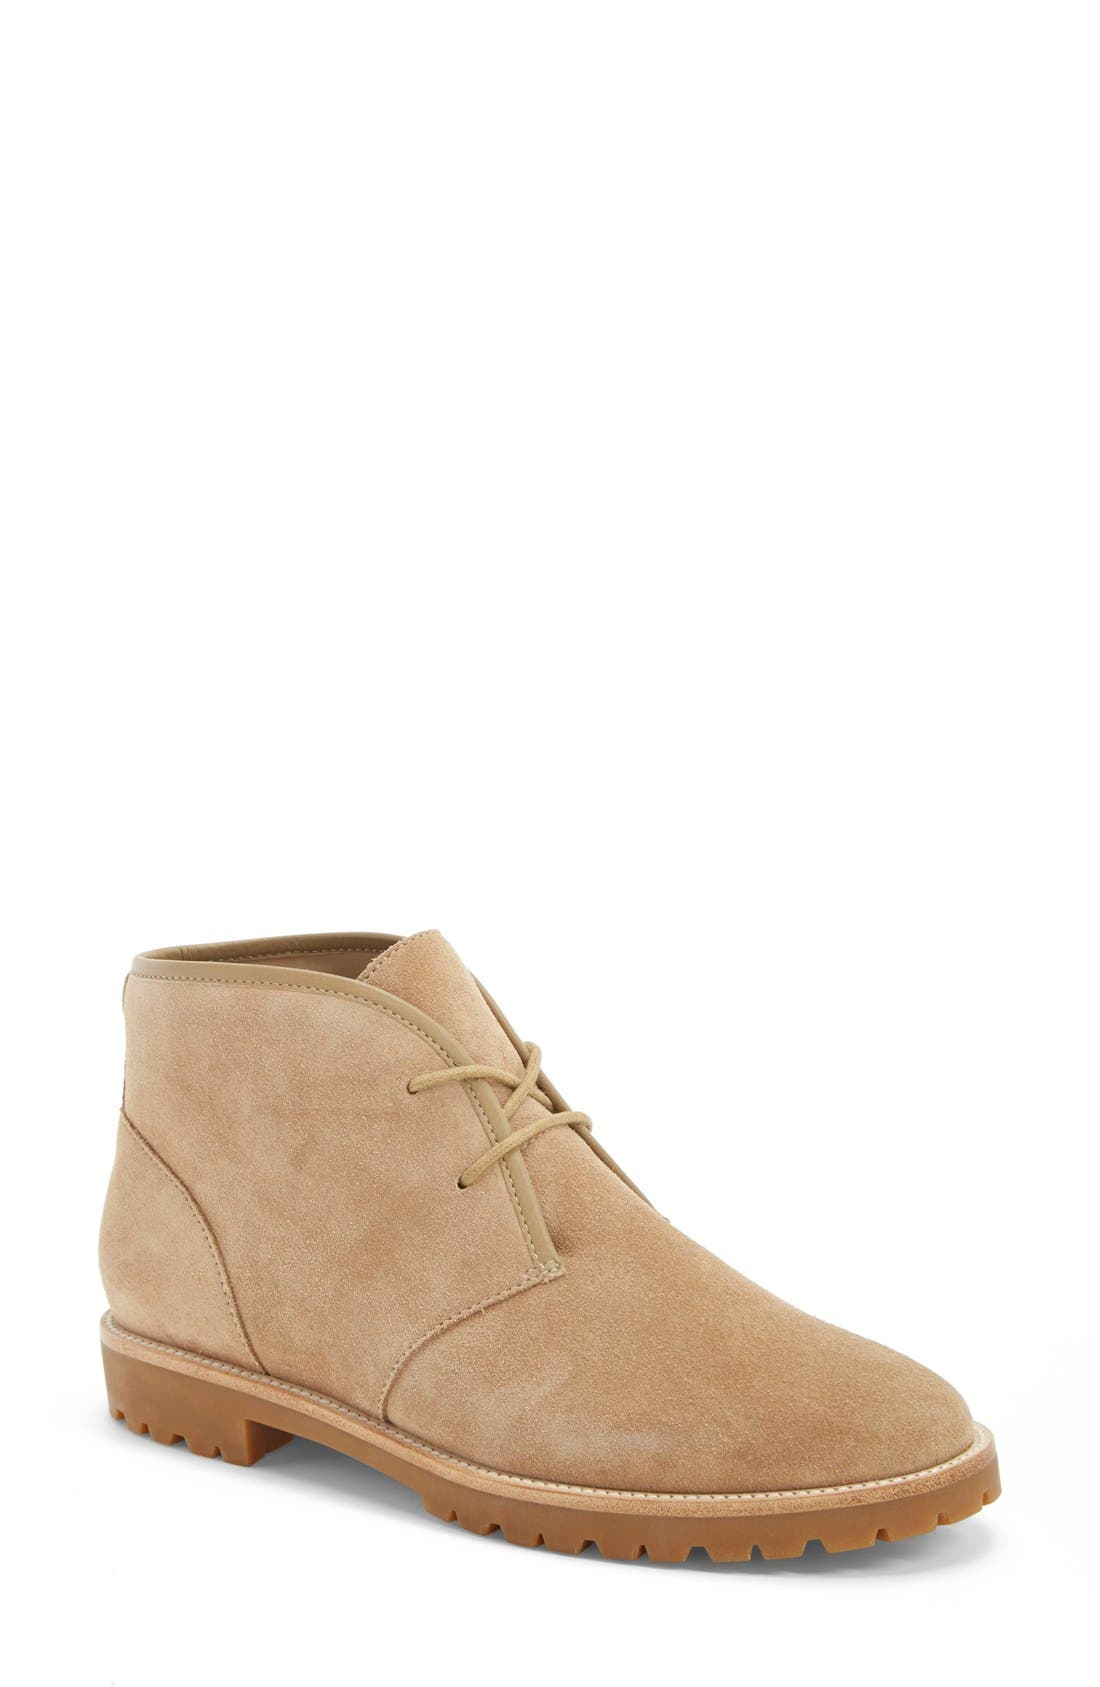 'Westbury' Chukka Bootie, Main, color, 292